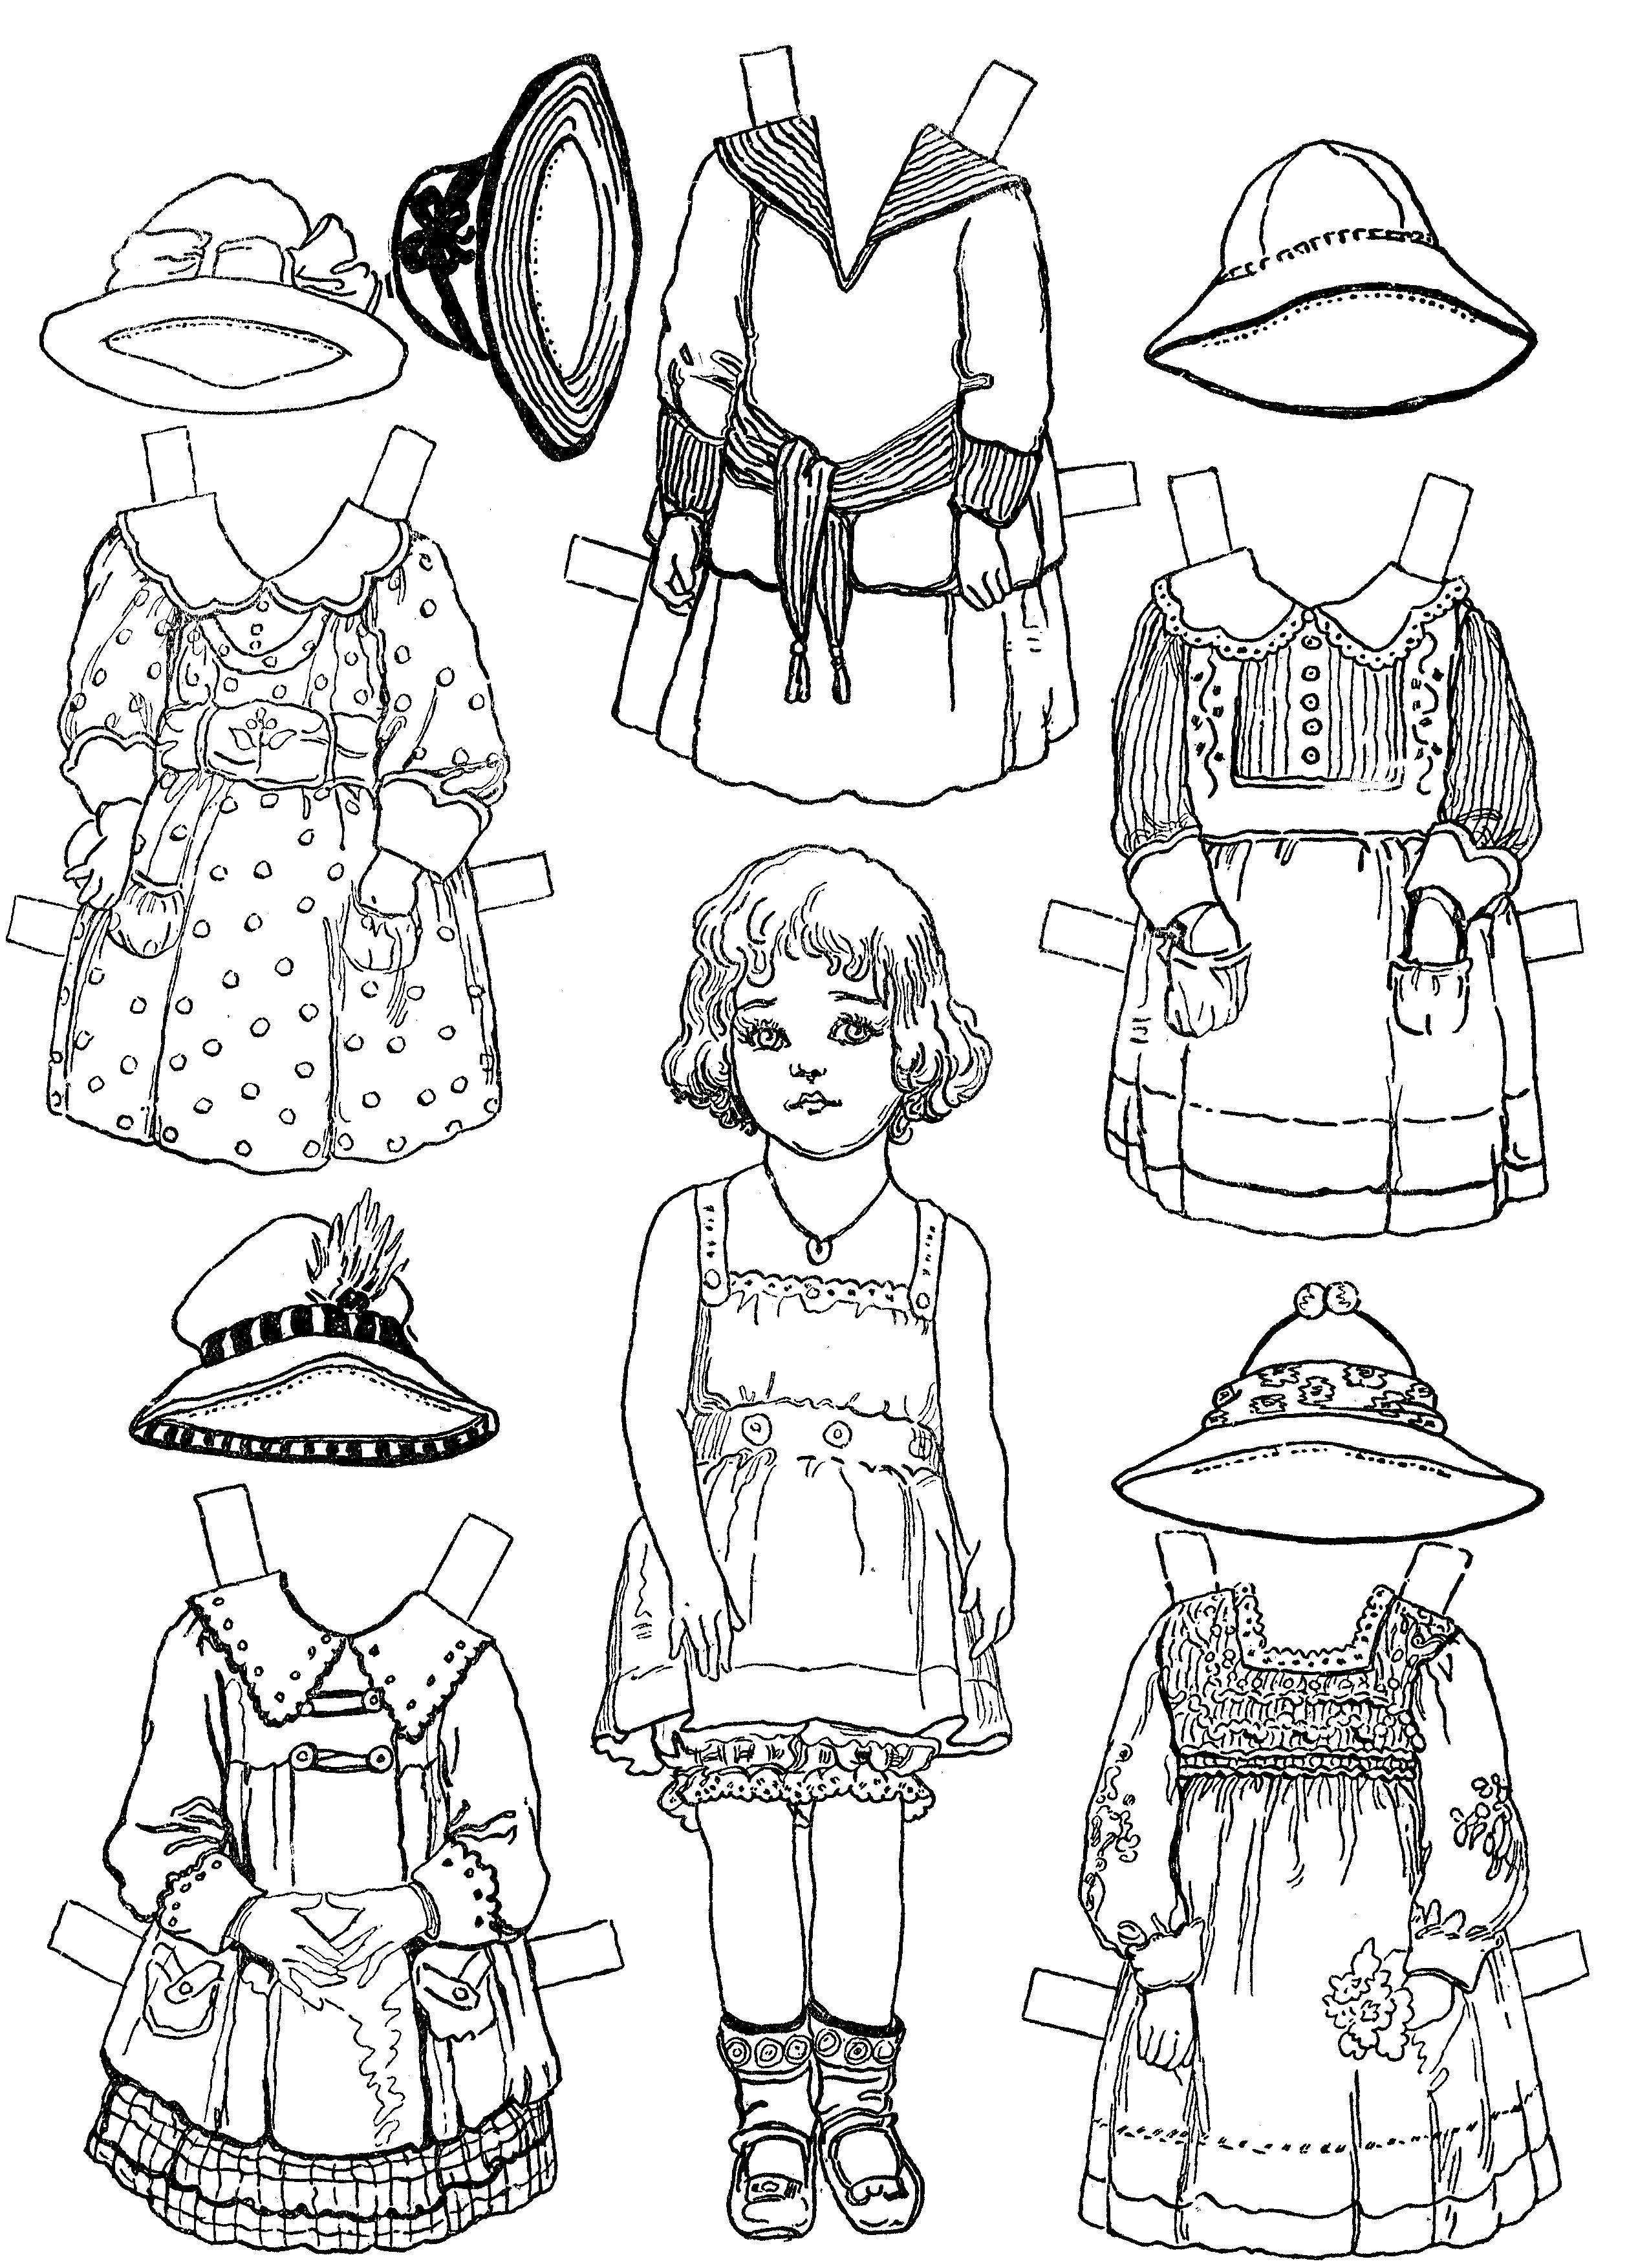 Paper Dolls And Paper Doll Dresses – Printable From Kid Fun | Color - Free Printable Paper Doll Coloring Pages